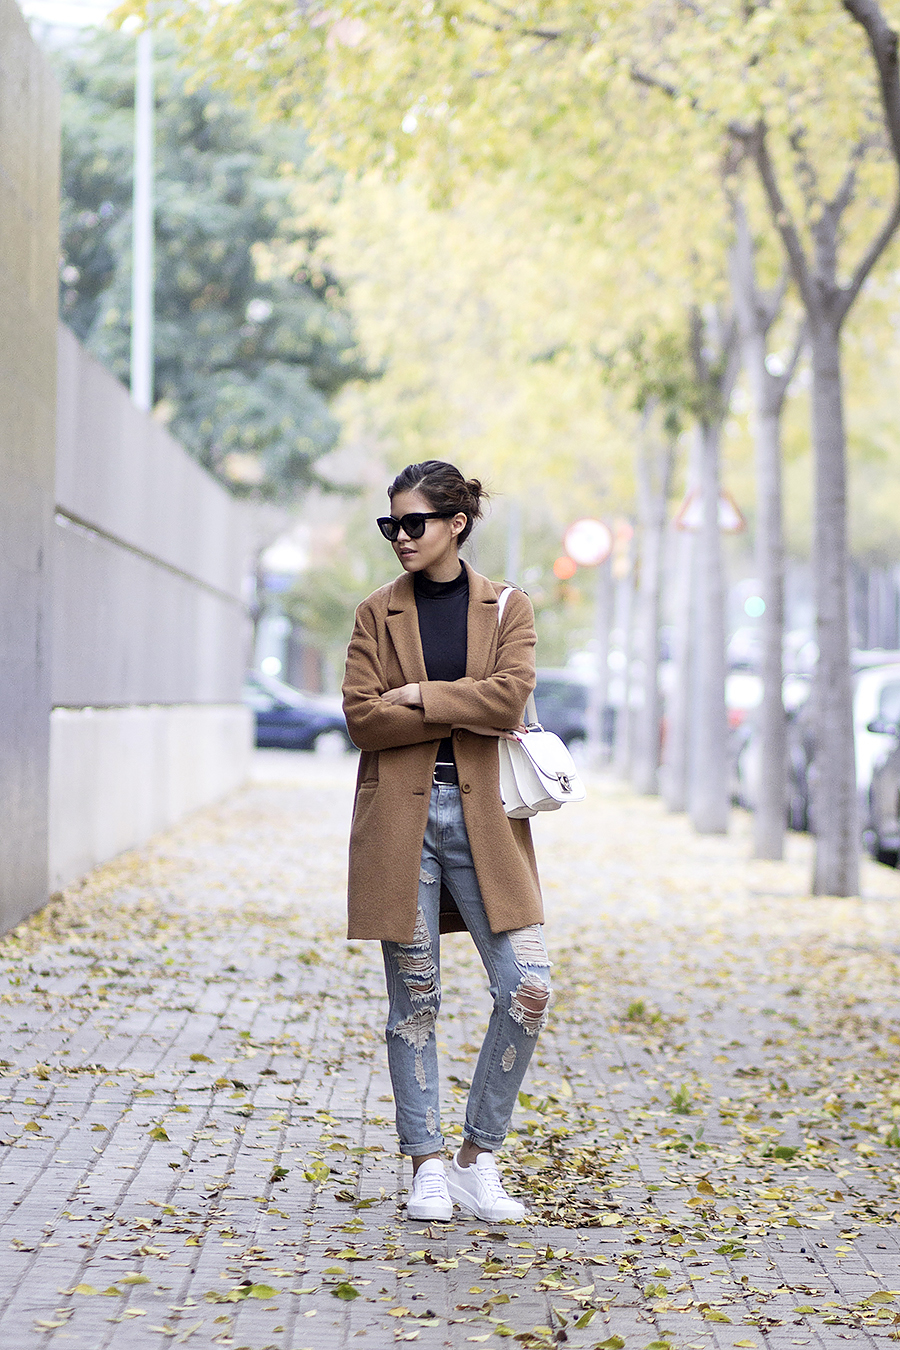 Ripped jeans are the ultimate tomboy item, and are perfect for combining with casual knitwear or a plain tee for an easy winter look. Via Adriana Gastélum. Coat: Gap, Shoes: Lost Ink.